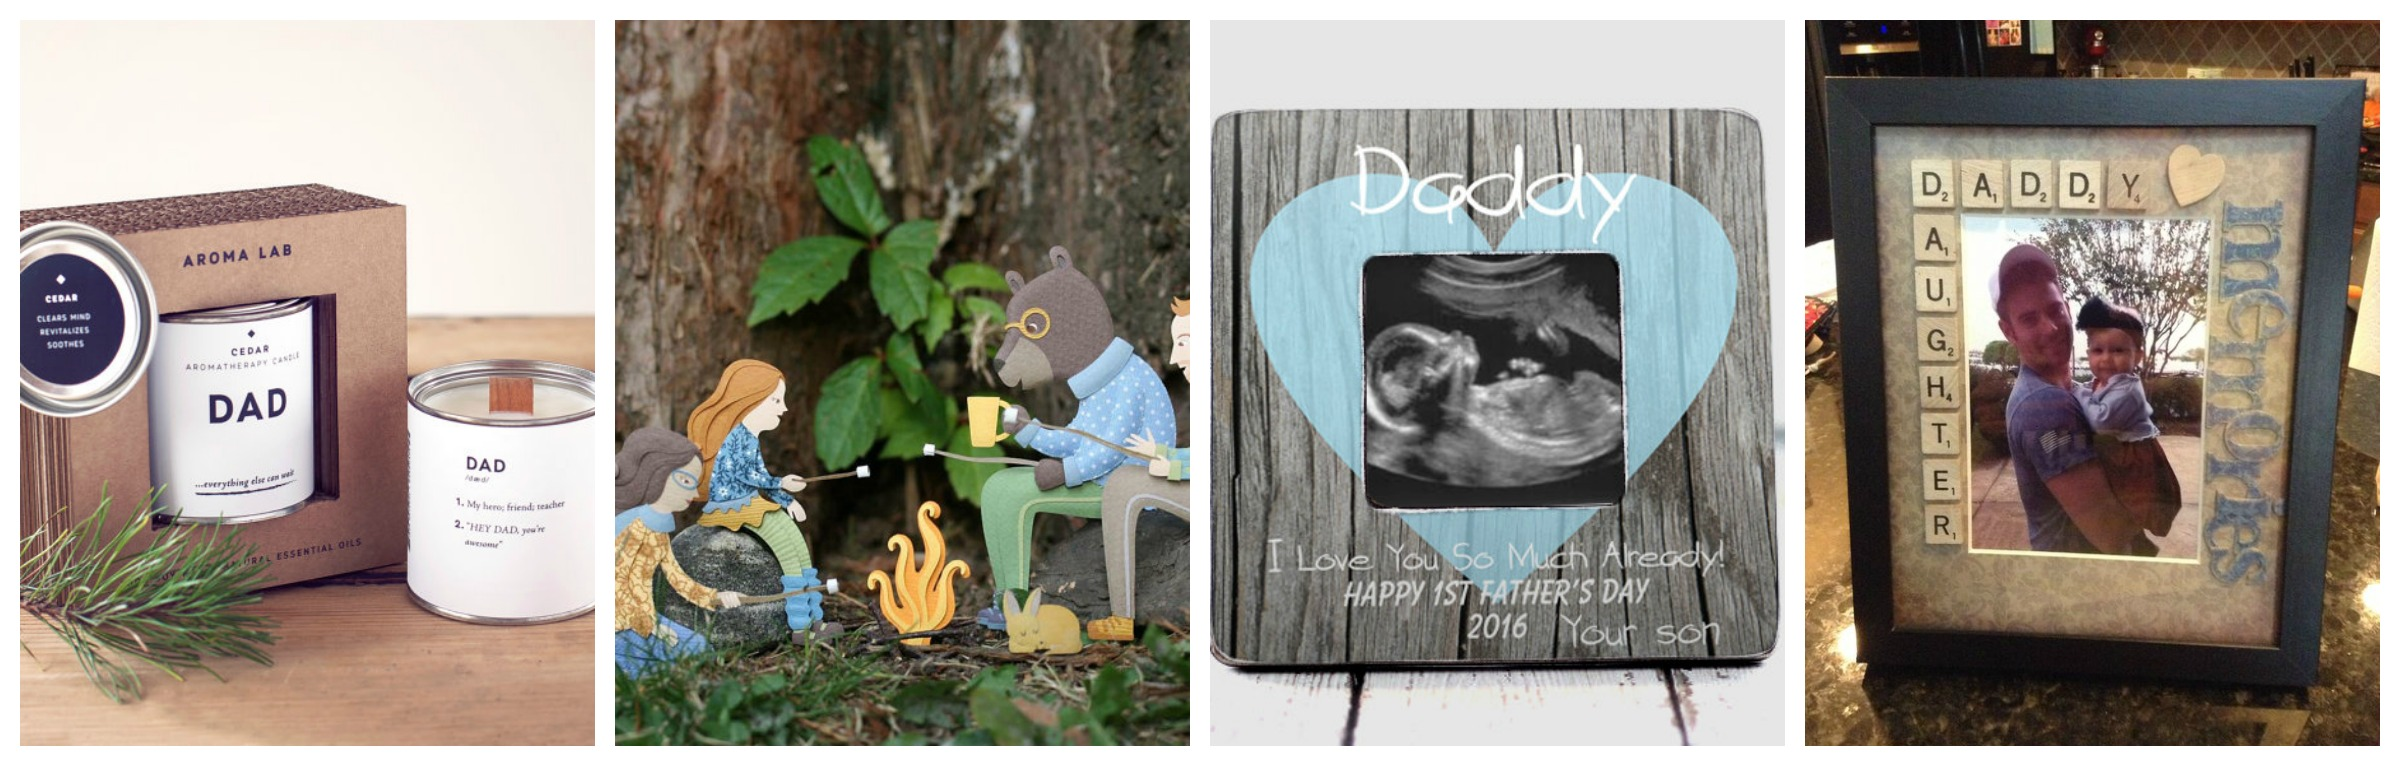 personalized fathers day gift ideas